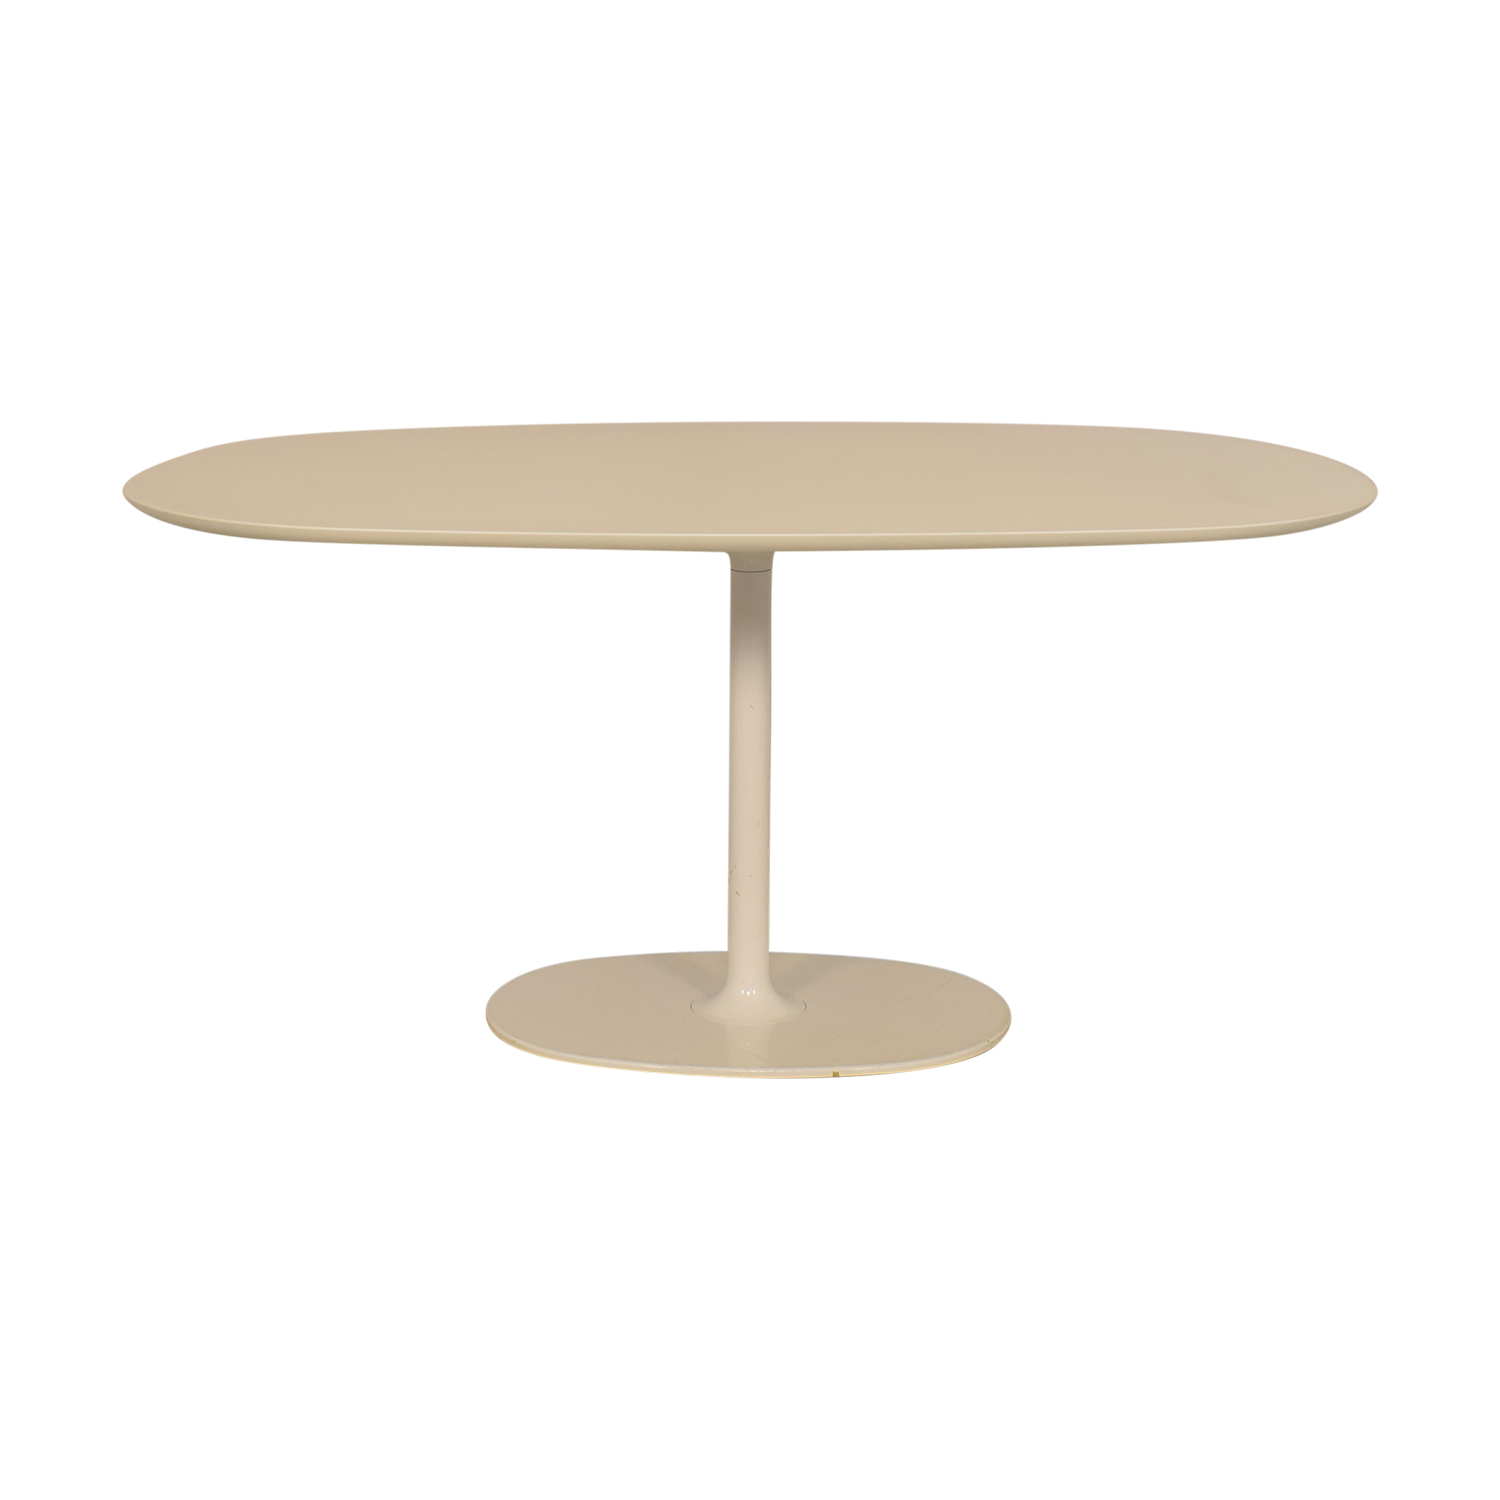 Arper Arper Dizzie Oval Dining Table on sale